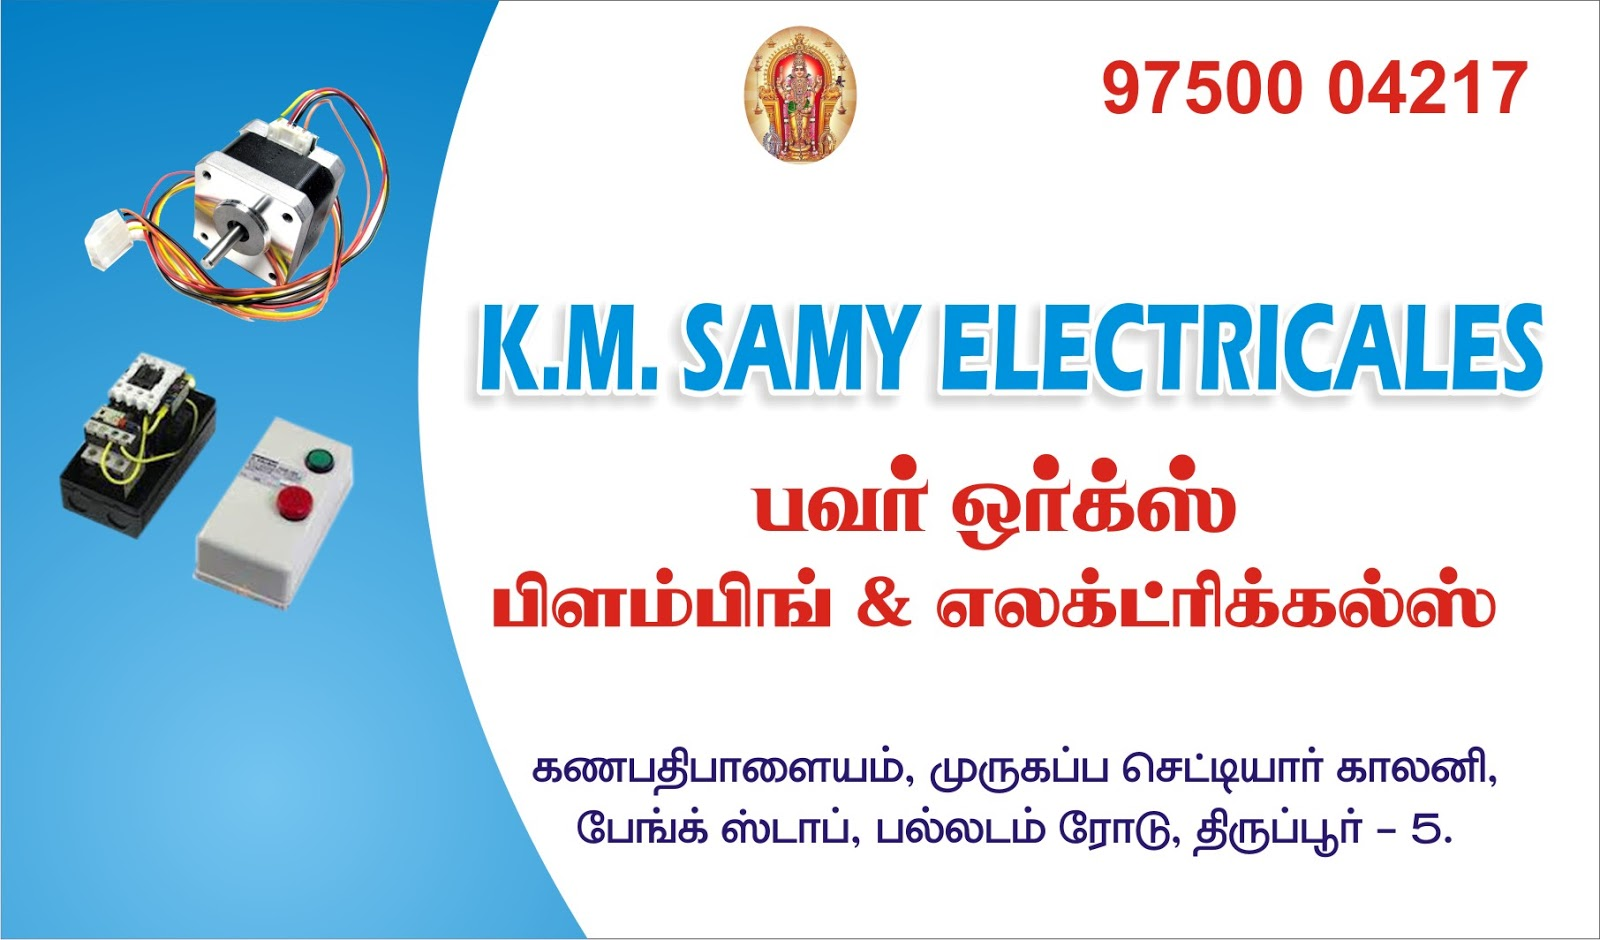 Km samy electrical visiting card rain digital graphics km samy electrical visiting card colourmoves